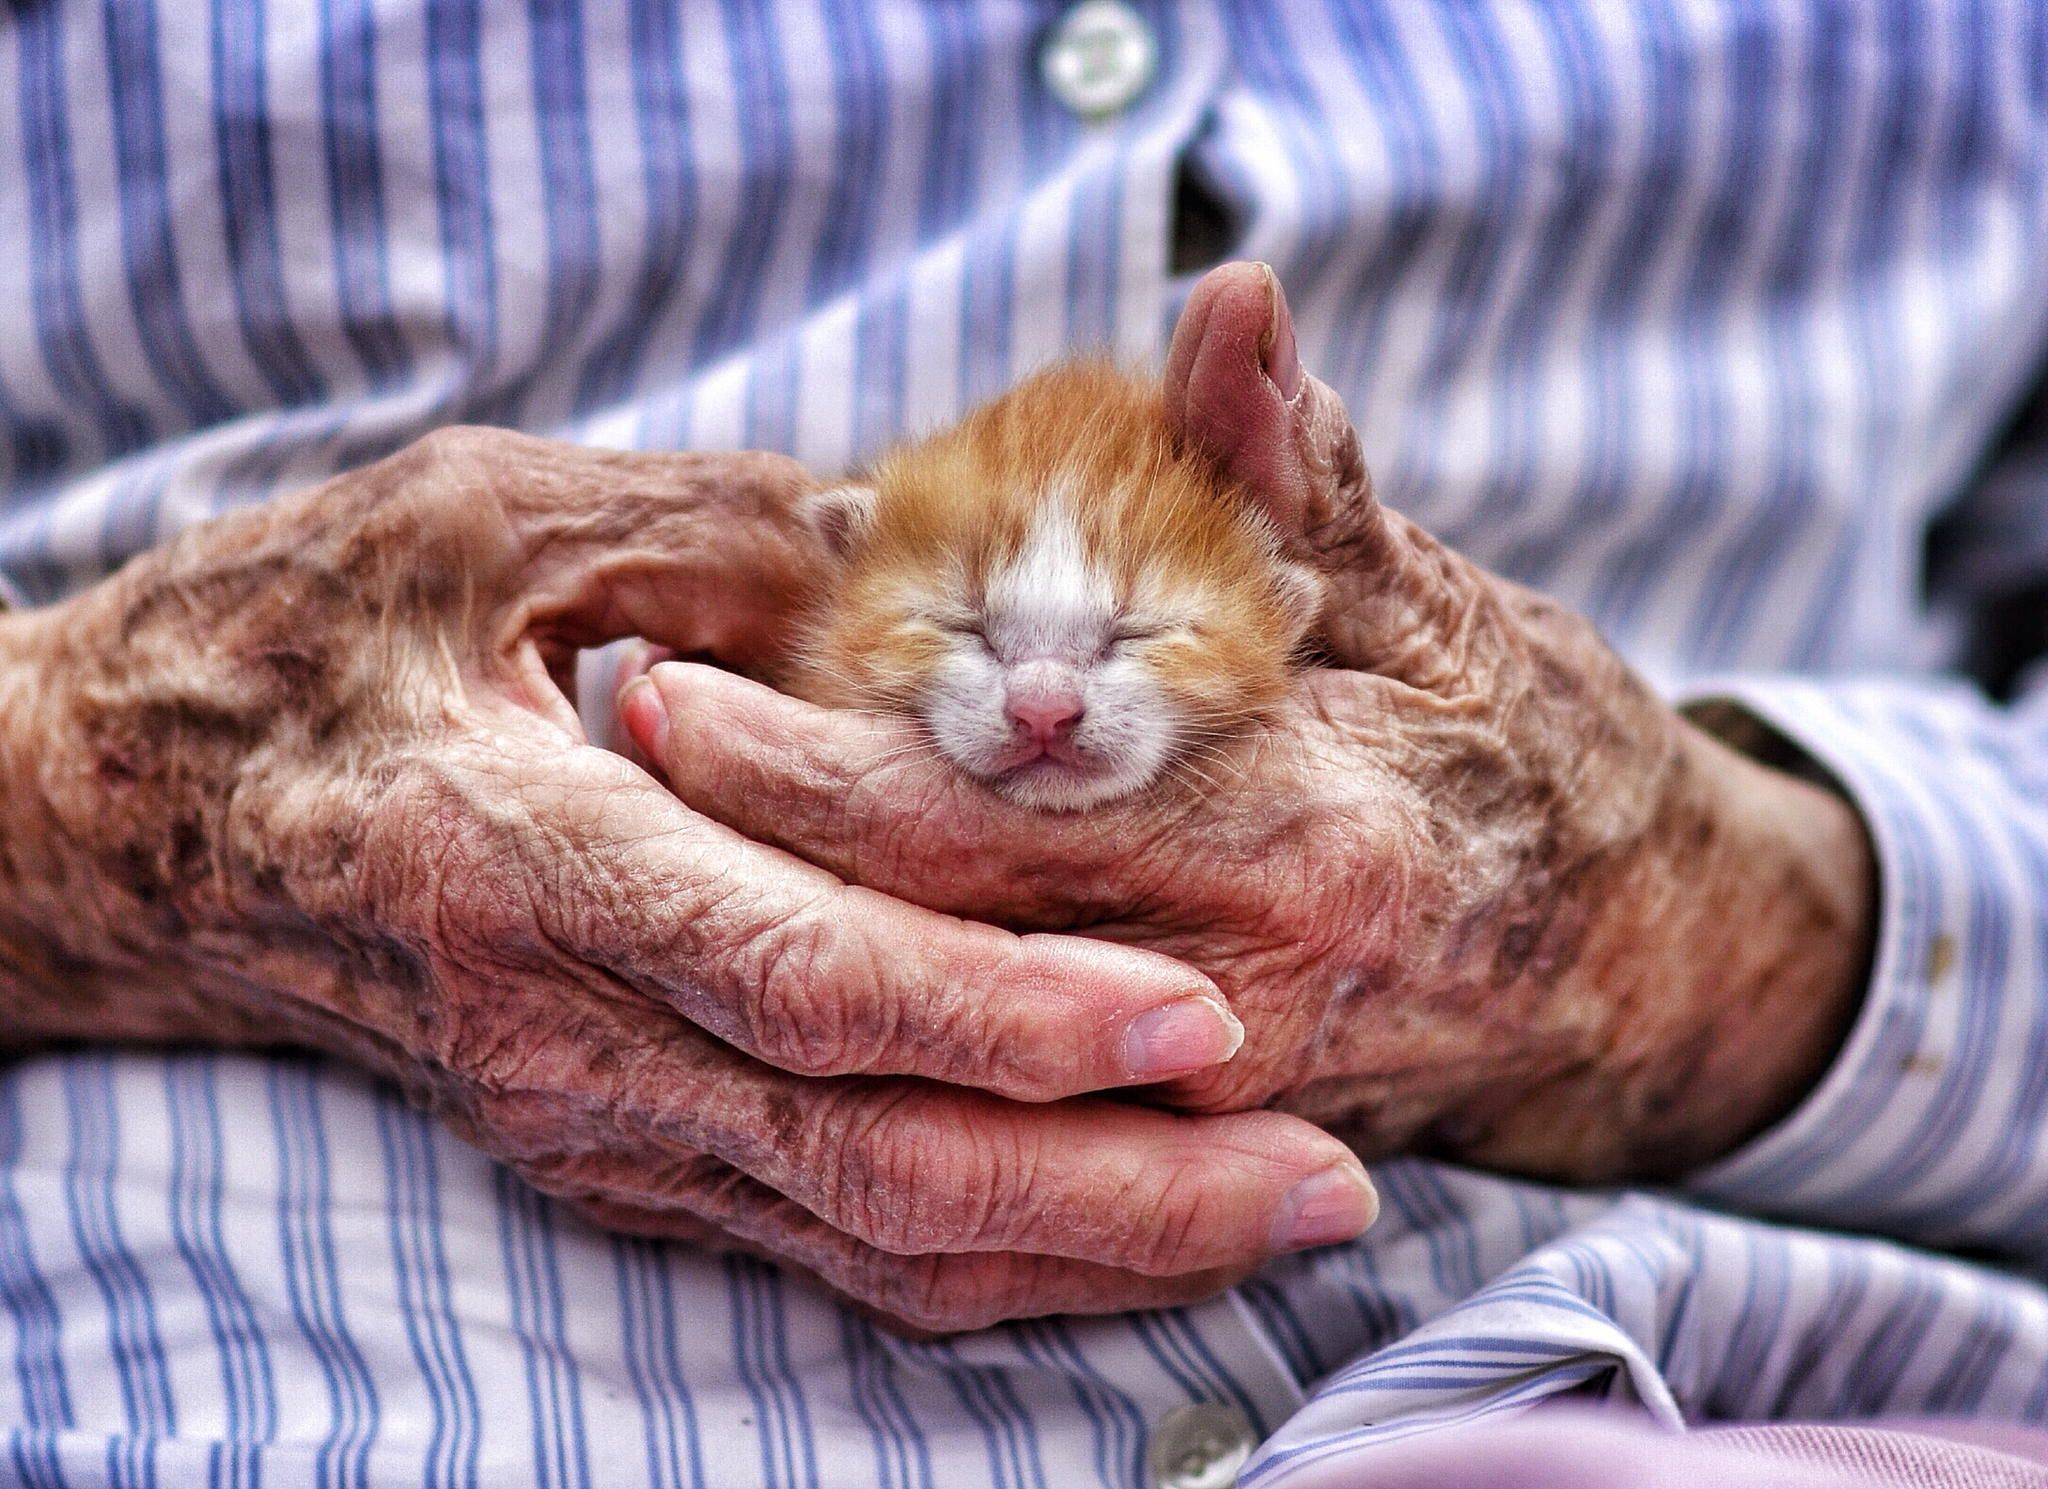 Mamaw holding a new baby kitten.